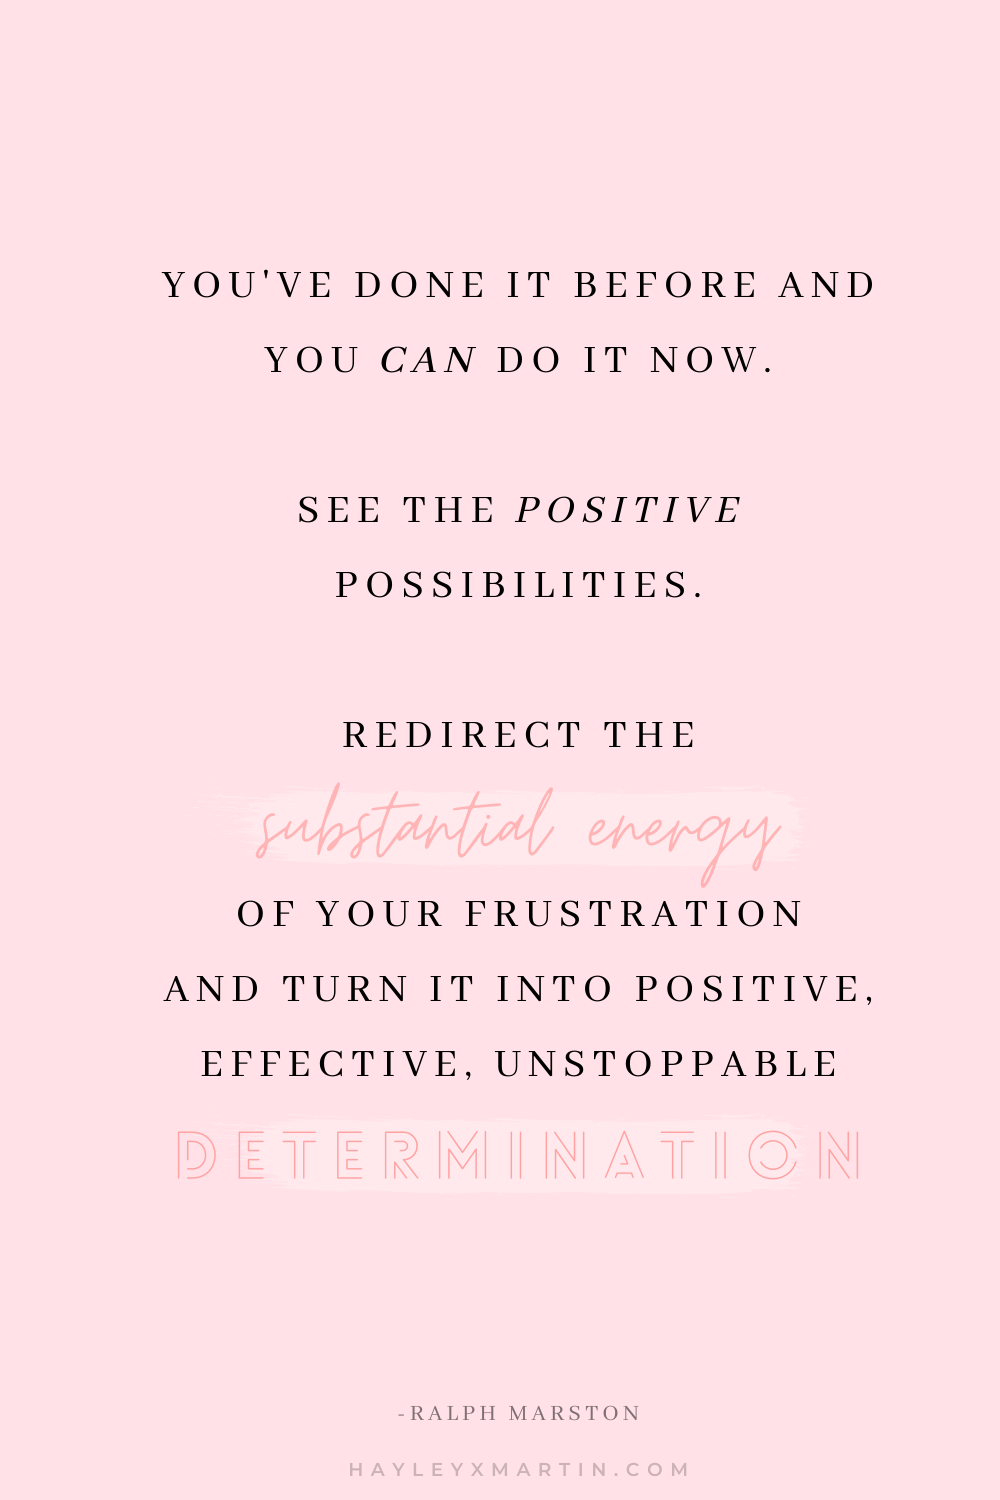 You've done it before and you can do it now. See the positive possibilities. Redirect the substantial energy of your frustration and turn it into positive, effective, unstoppable determination